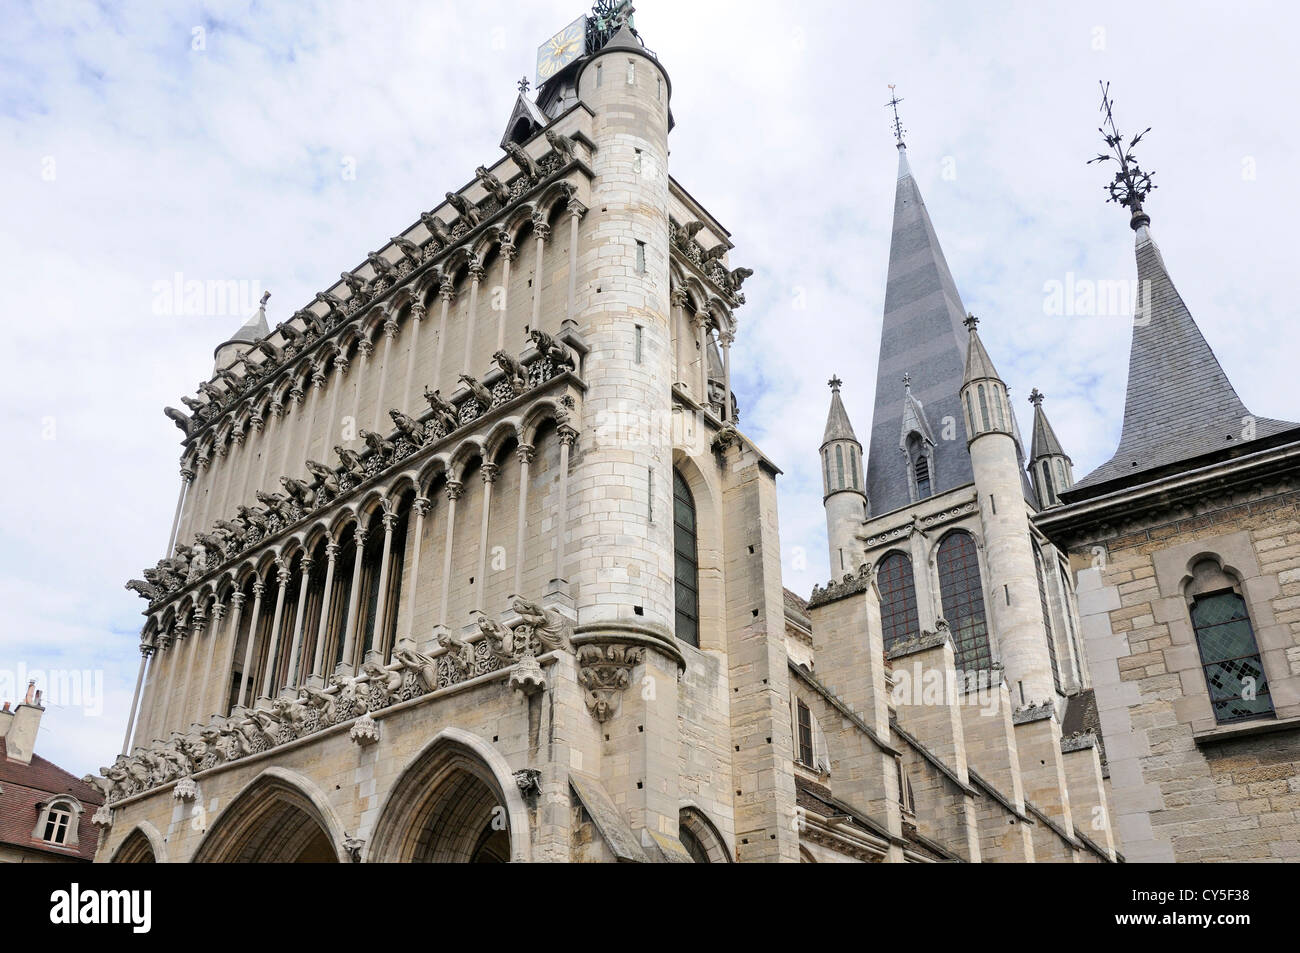 Gargoyles on the facade of the cathedral Notre Dame in Dijon, Côte-d'Or, Burgundy, France Stock Photo